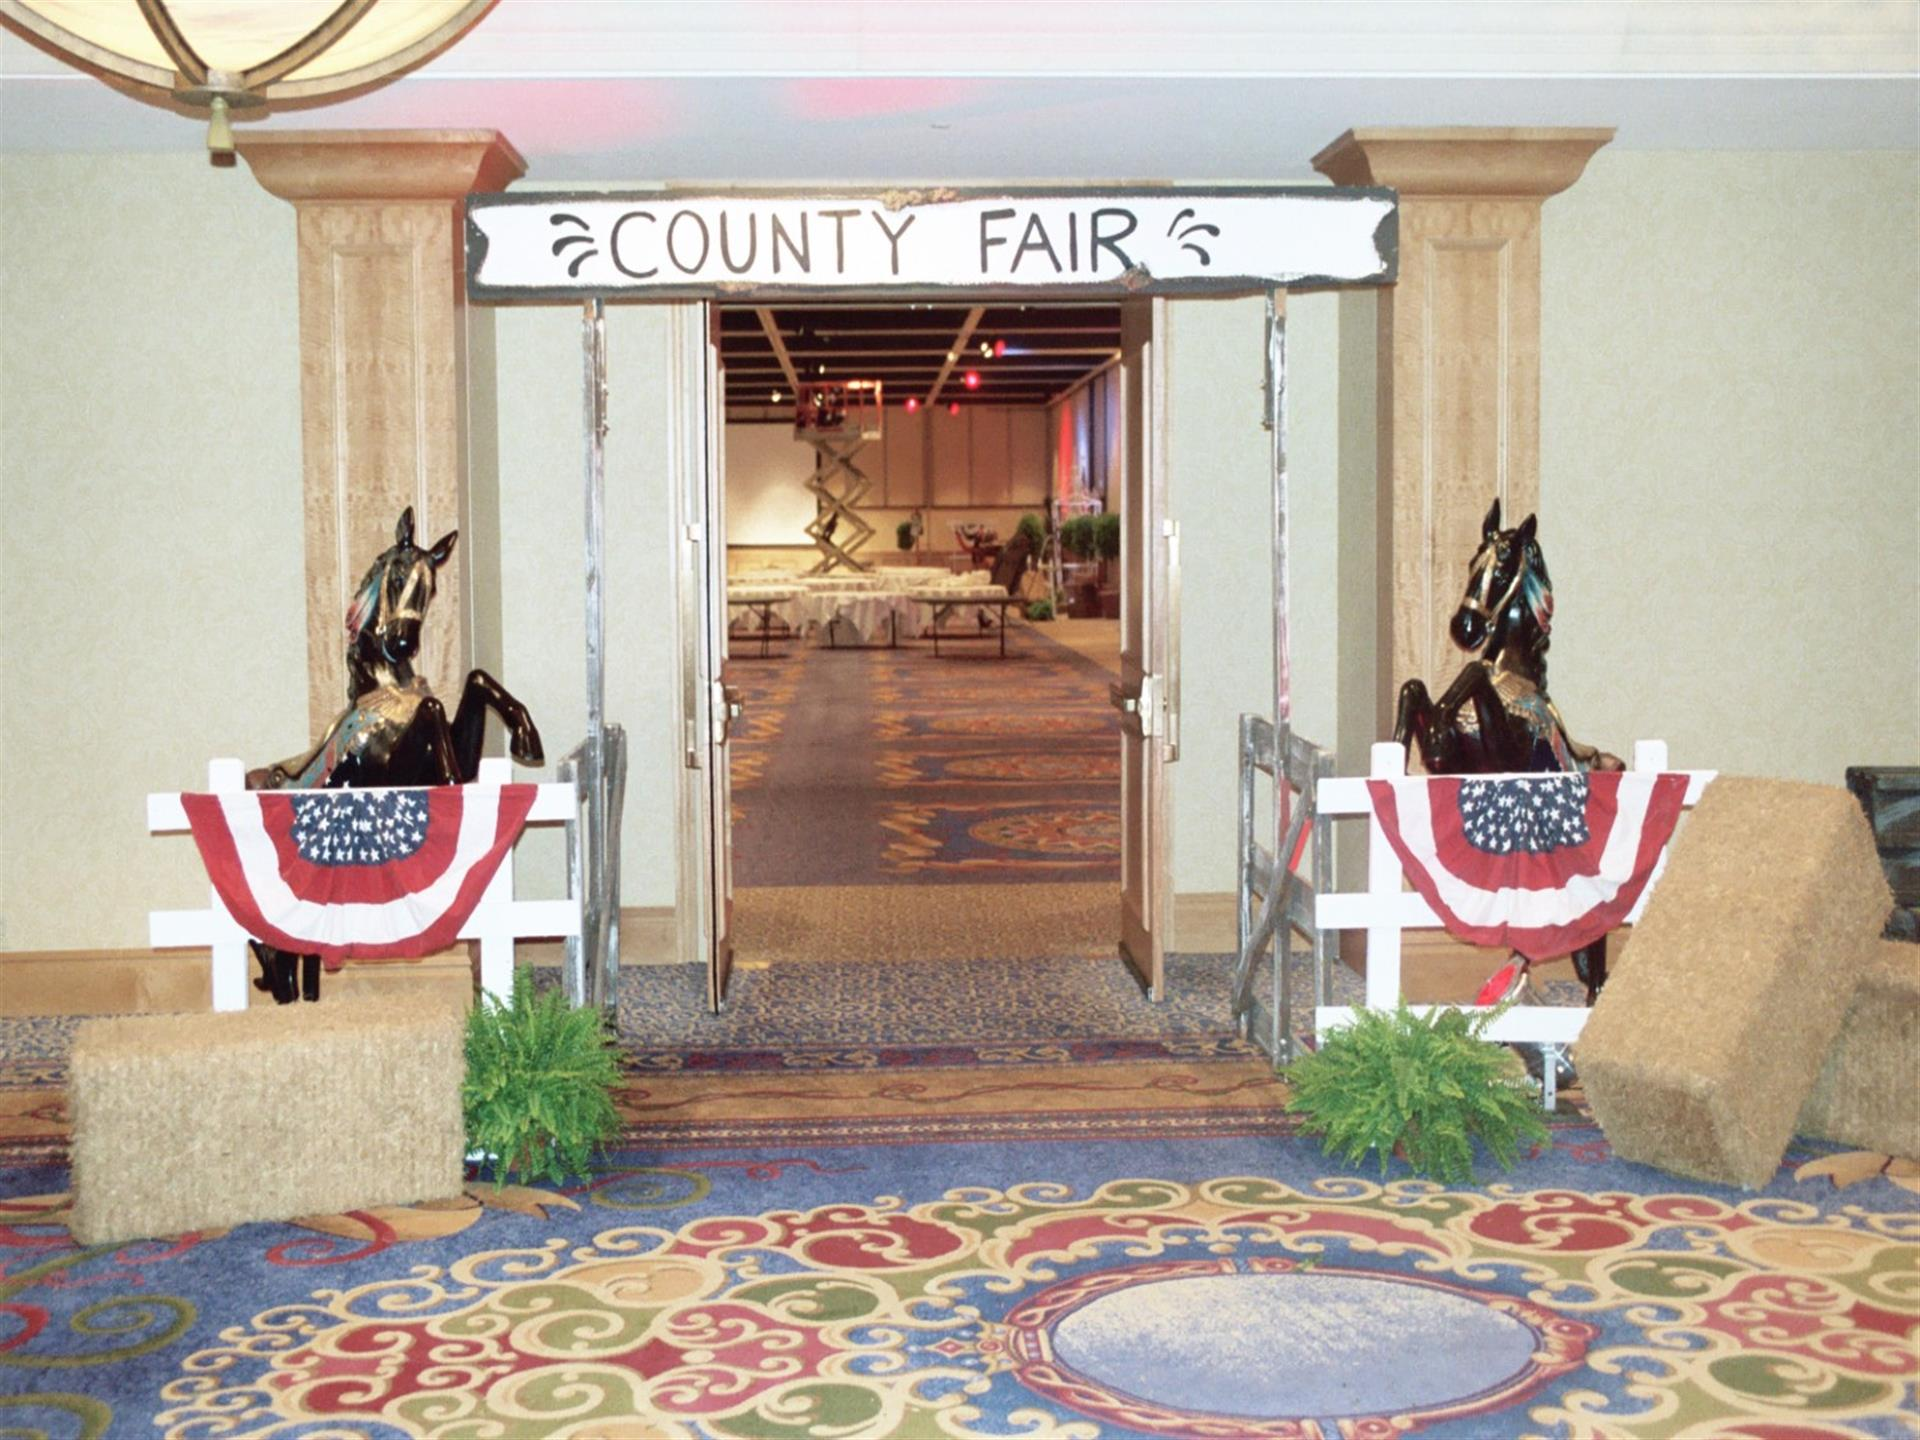 Country Fair decorative entrance to banquet room